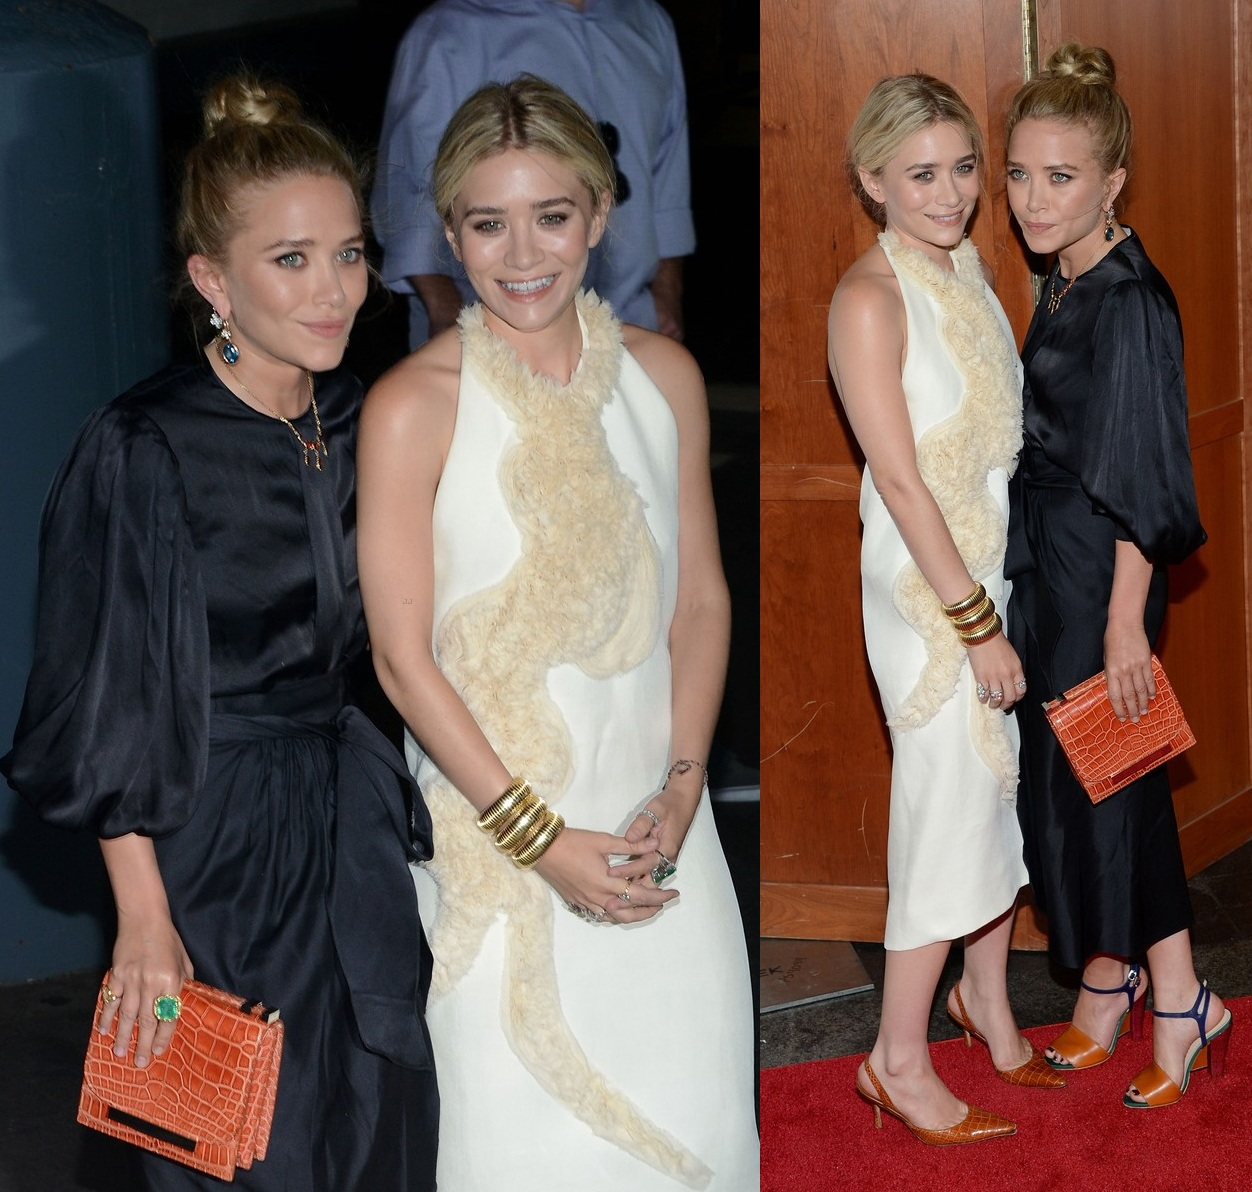 http://2.bp.blogspot.com/-32_uebfO5E0/T8knCufsf_I/AAAAAAAAKLQ/Ml5OLb9tc5g/s1600/Mary-Kate+&+Ashley+Olsen+in+The+Row+-+The+Fresh+Air+Funds+Salute+To+American+Heroes.jpg